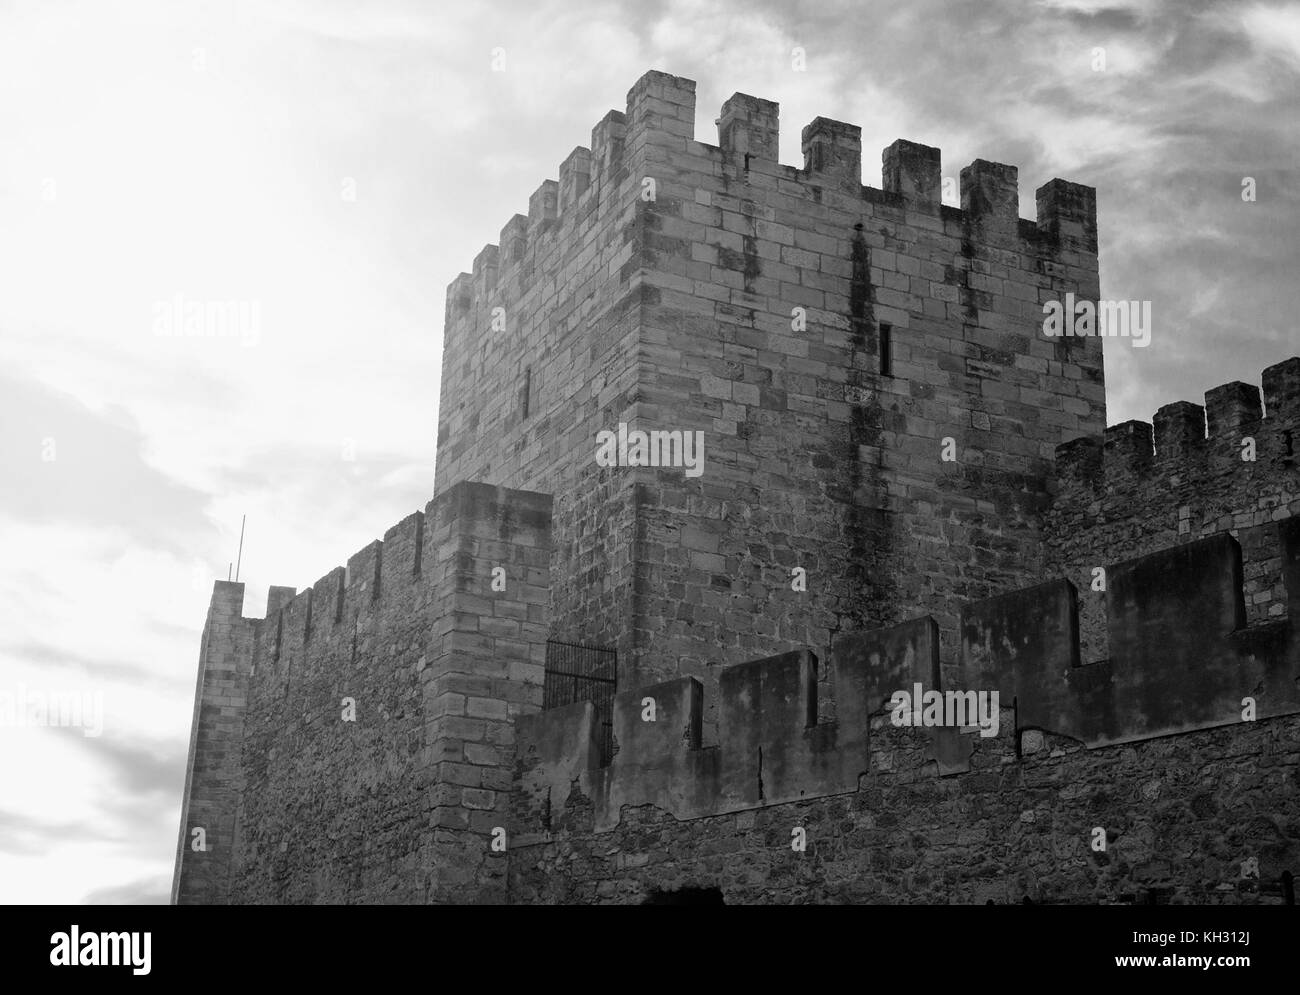 Castle of St. George in Lisbon, Portugal. Black and white. - Stock Image